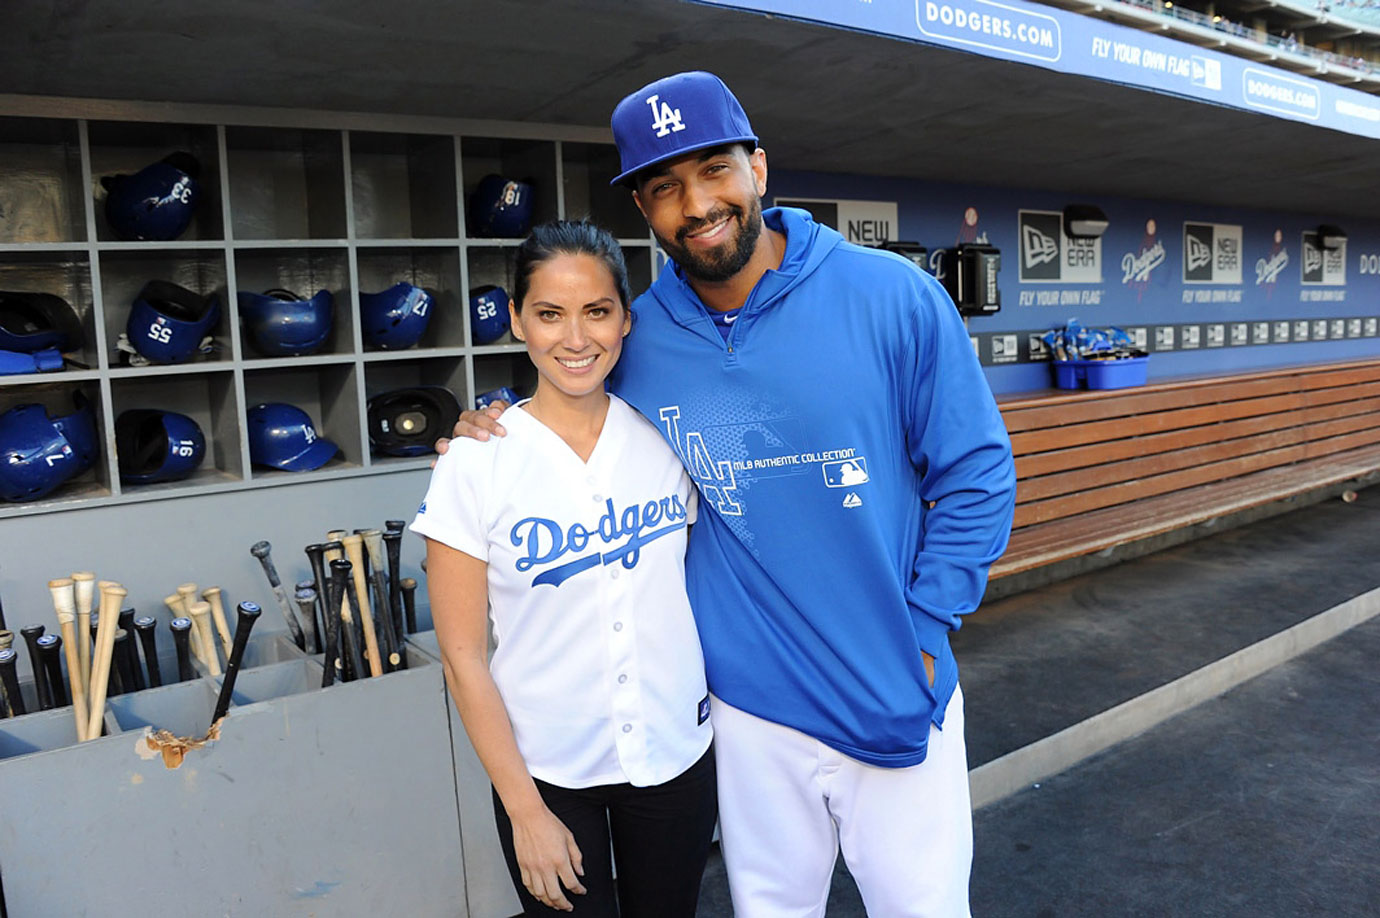 Olivia Munn poses with fellow Oklahoman Matt Kemp as she visits Dodger Stadium to throw the first pitch before the Dodgers game against the Arizona Diamondbacks on June 10, 2013 in Los Angeles.